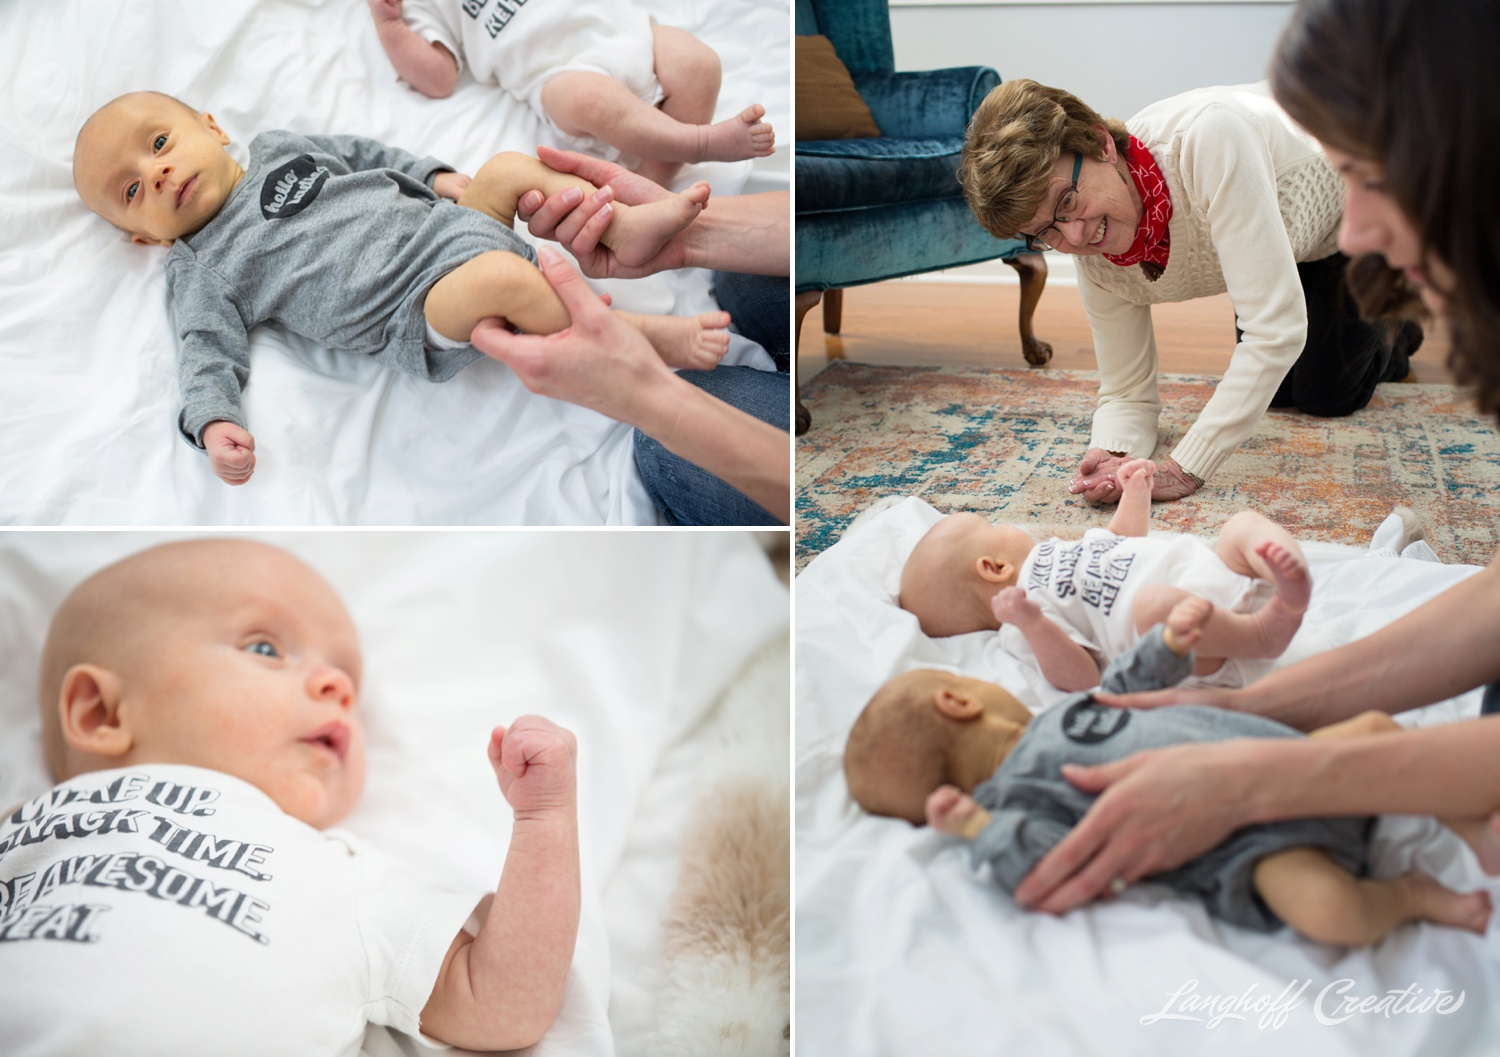 20170211-SchulteFamily-RealLifeSession-DayInTheLife-Twins-LanghoffCreative-DocumentaryFamilyPhotography-RDUphotographer-2-photo.jpg